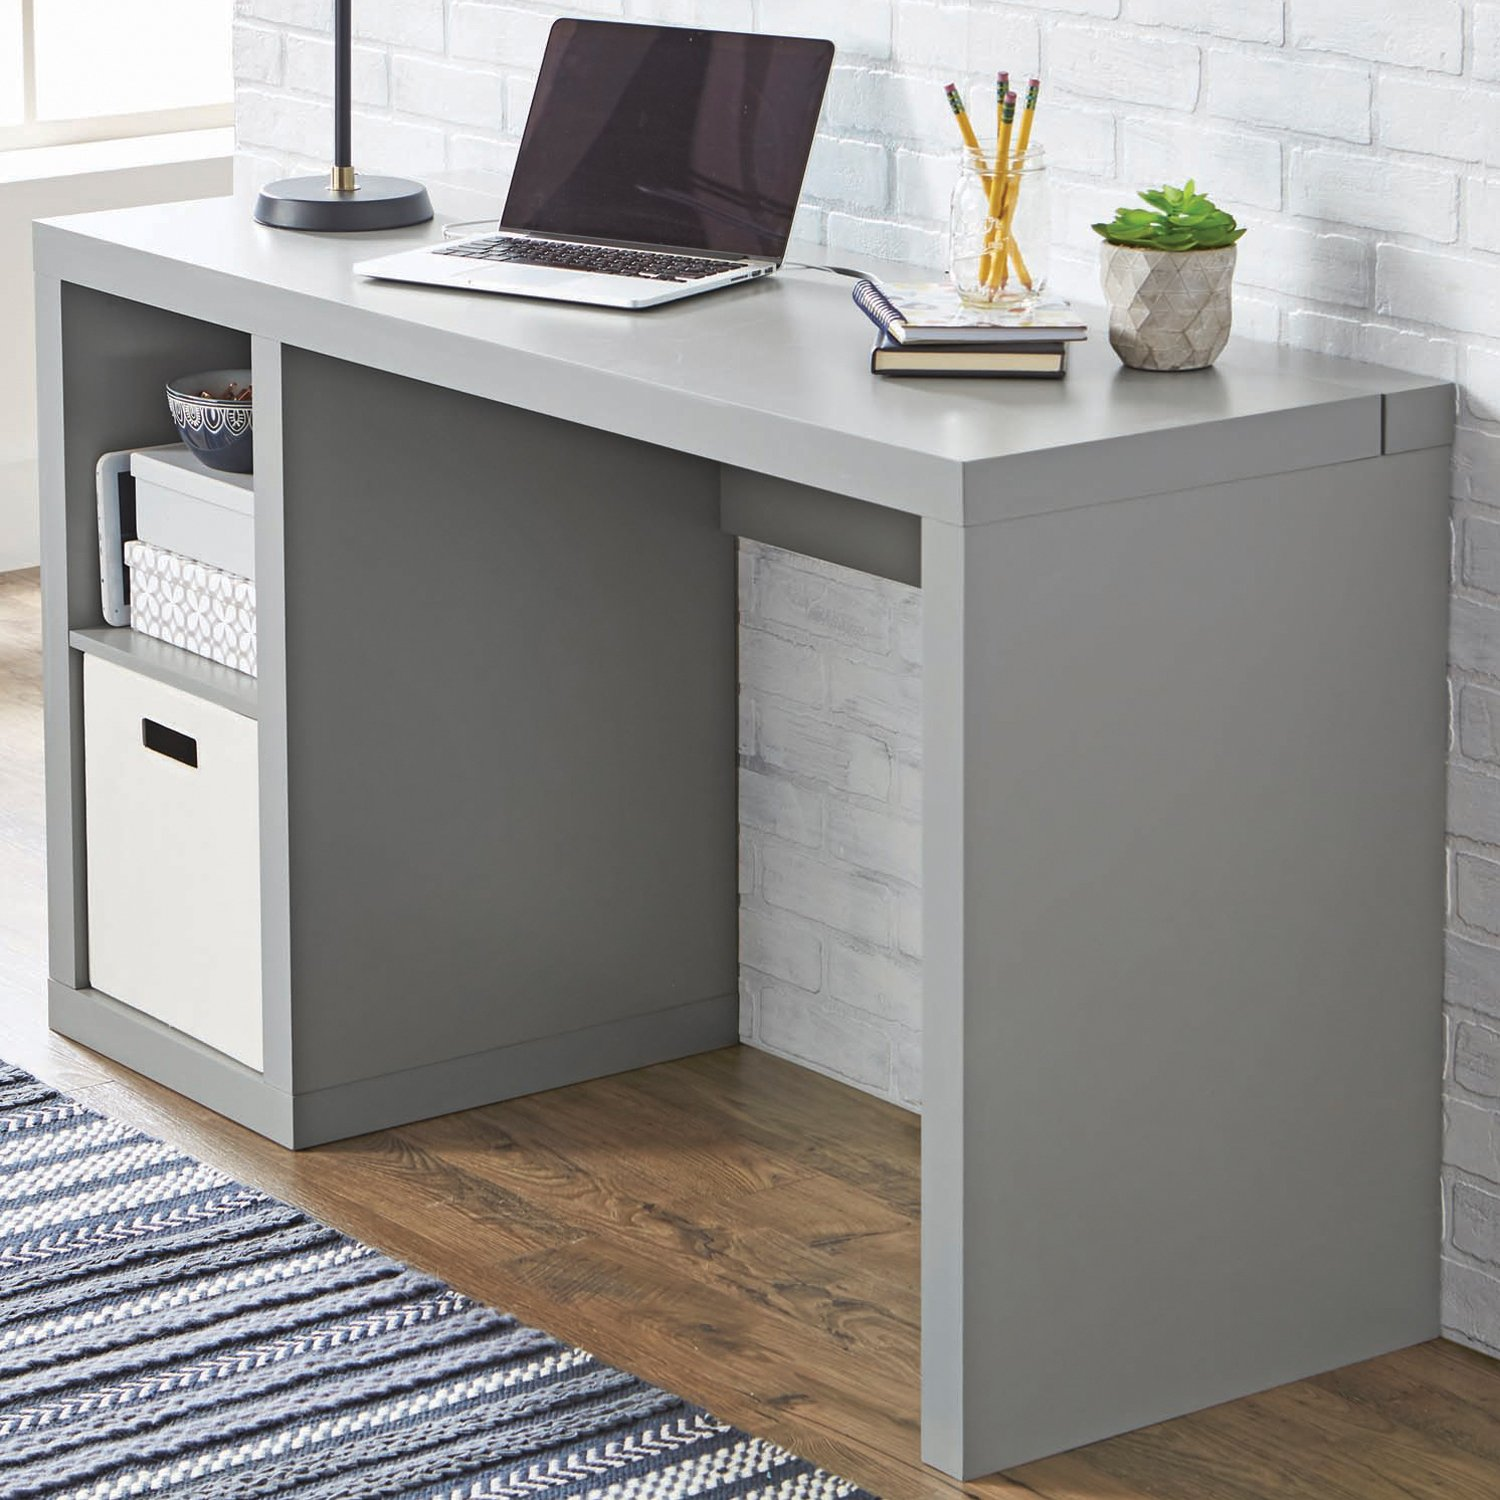 Better Homes and Gardens Cube Organizer Writing Desk, Gray